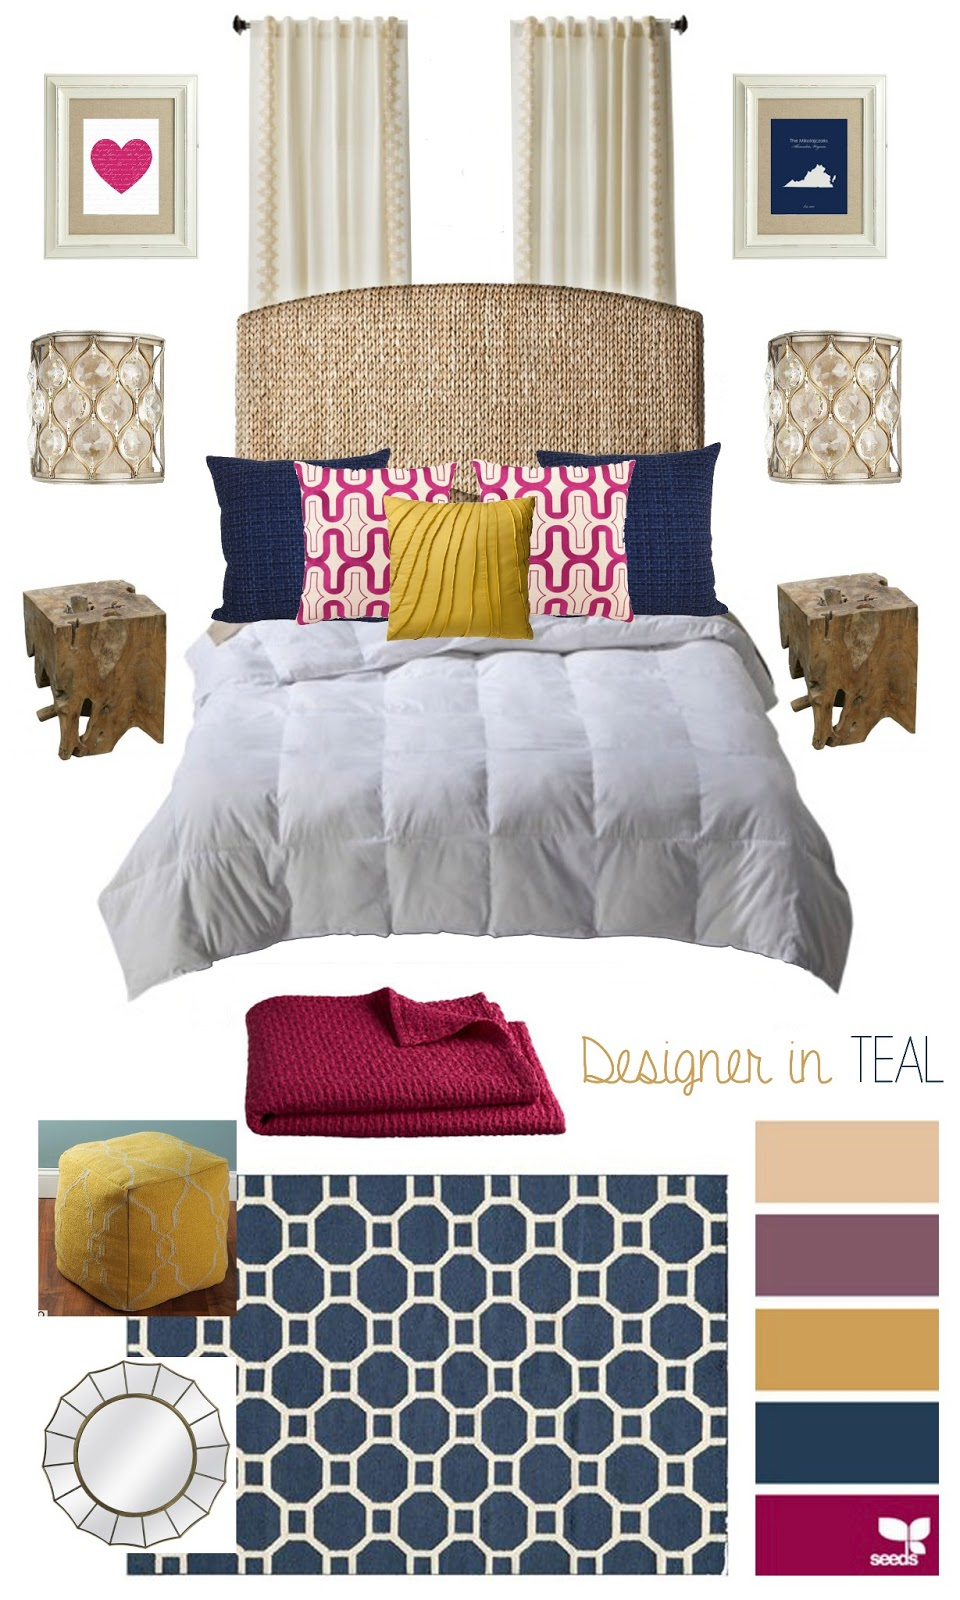 designer in teal mood board bedroom On bedroom boards